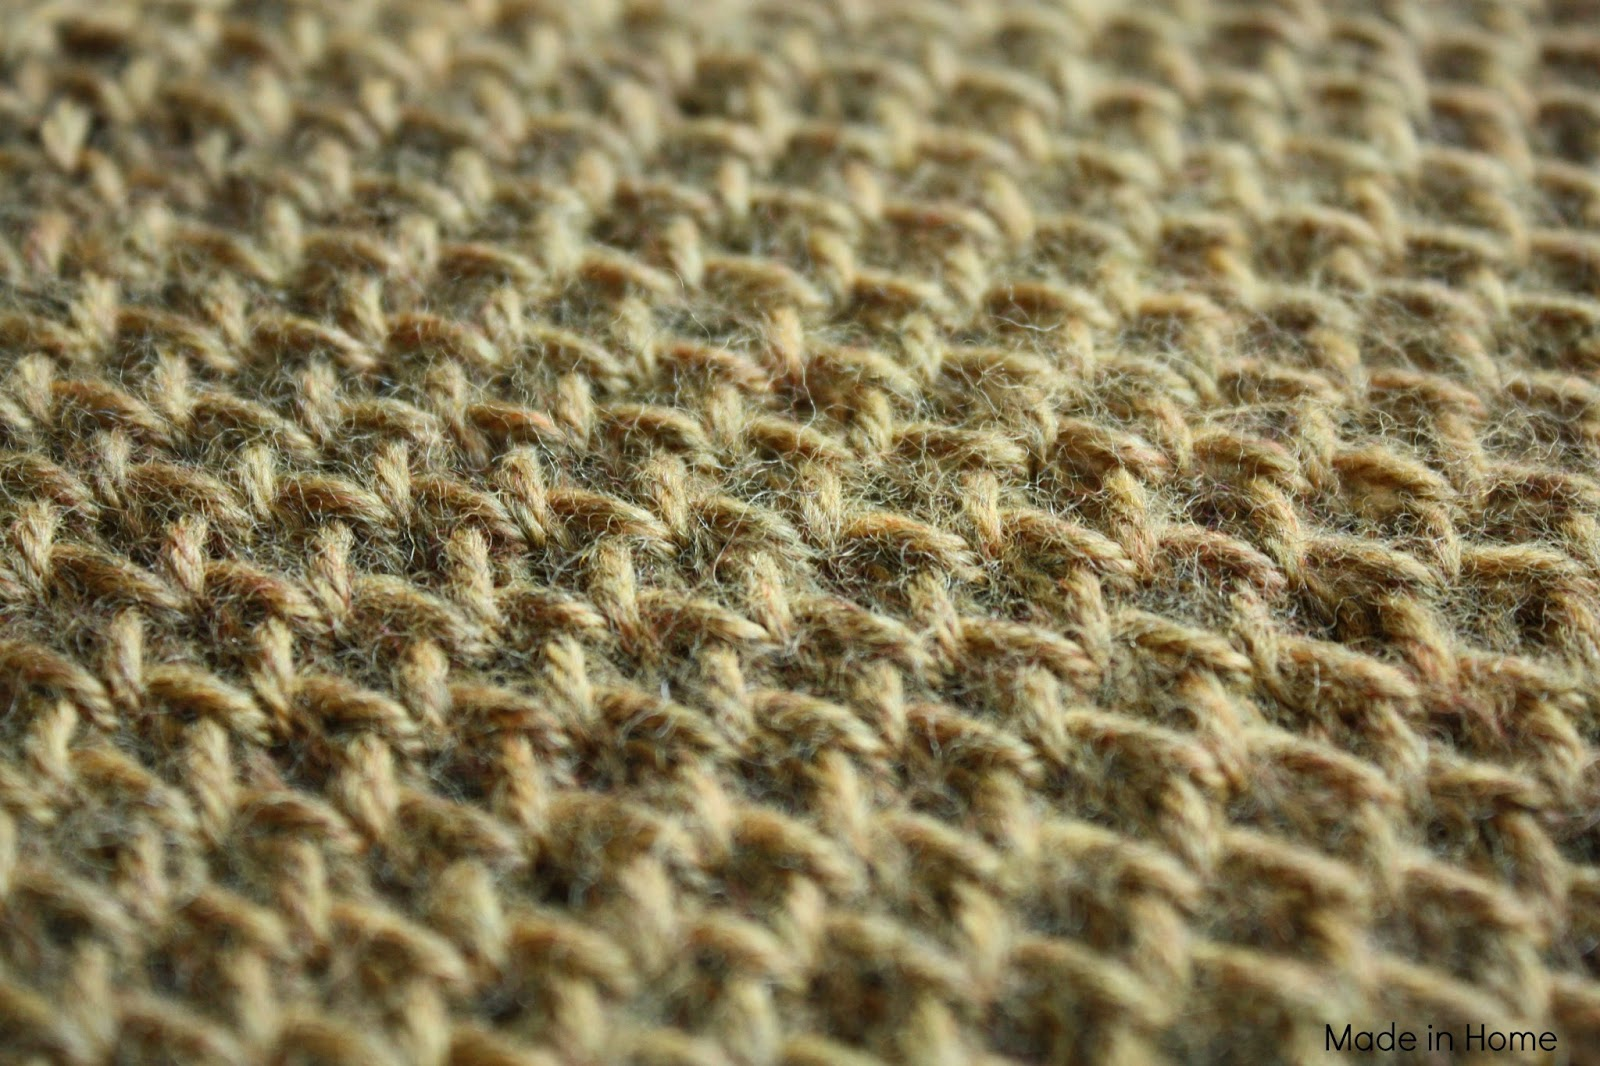 Knitting Adding Stitches In The Middle Of A Row : Made in Home: Study of honeycomb :: Knitting